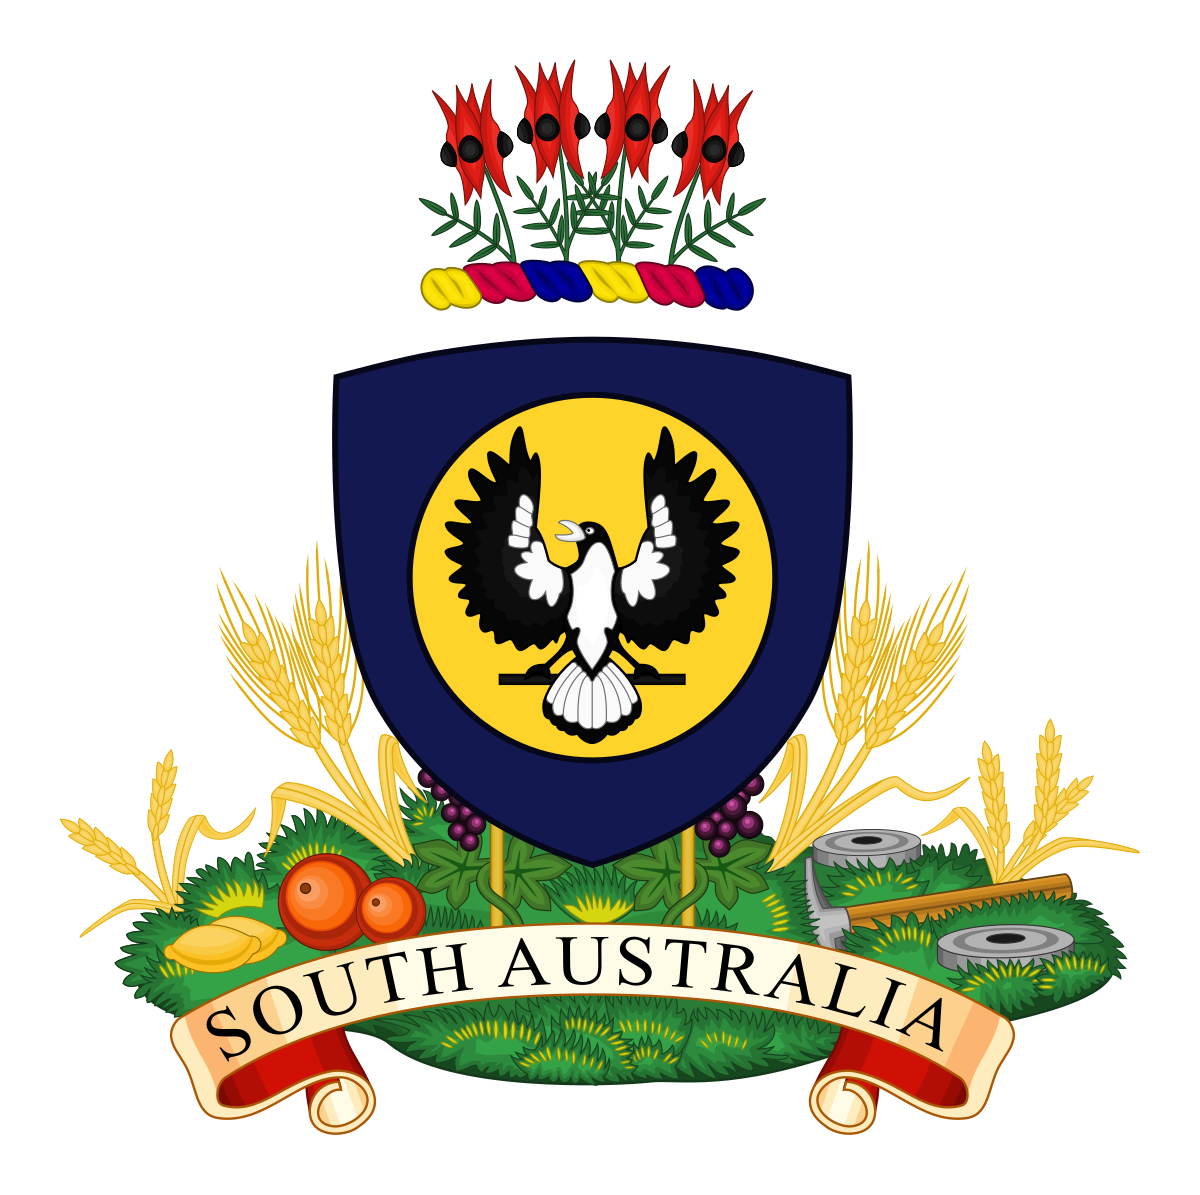 Coat of arms south. Voting clipart self government